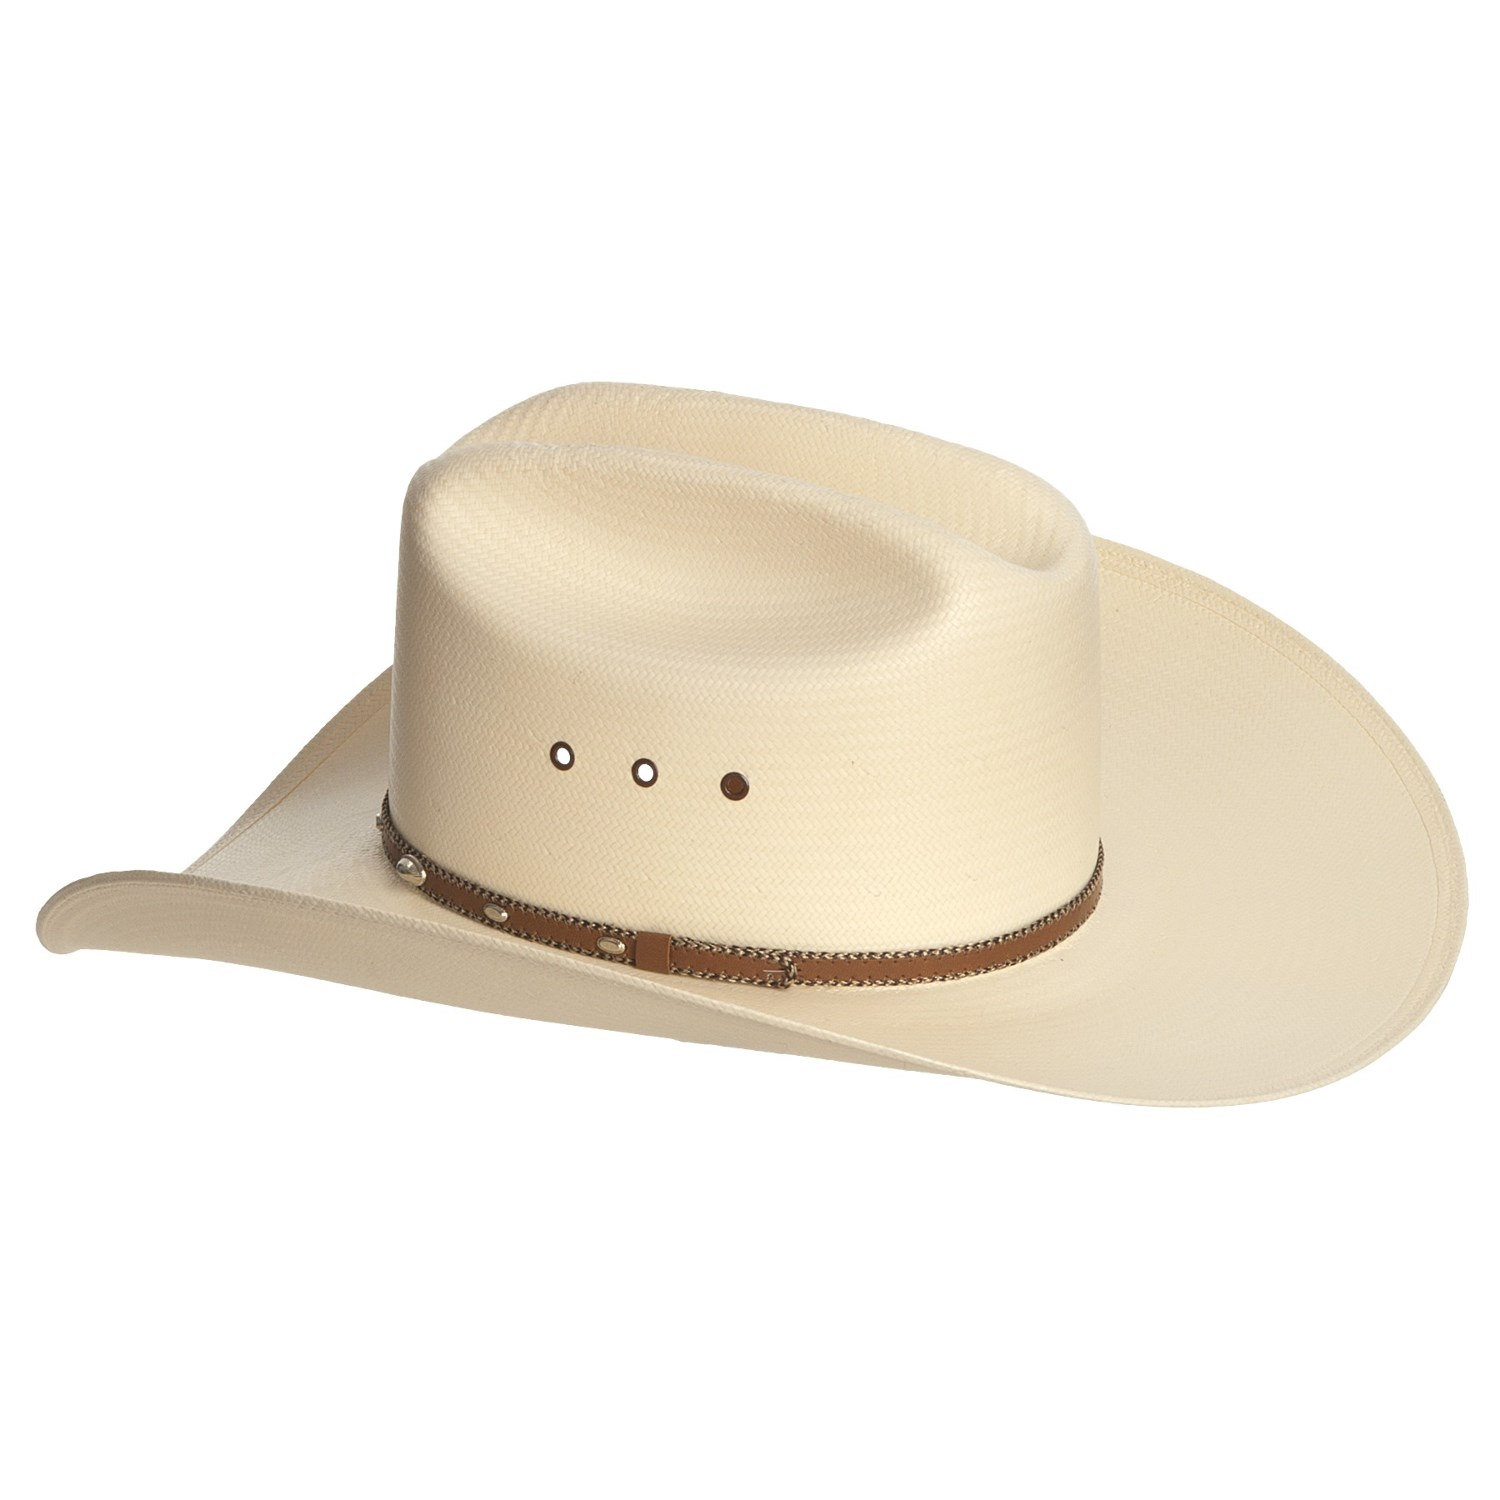 Resistol Cattleman Long Oval Cowboy Hat (For Men and Women) 4604V 64 ... 12e6364f4c2